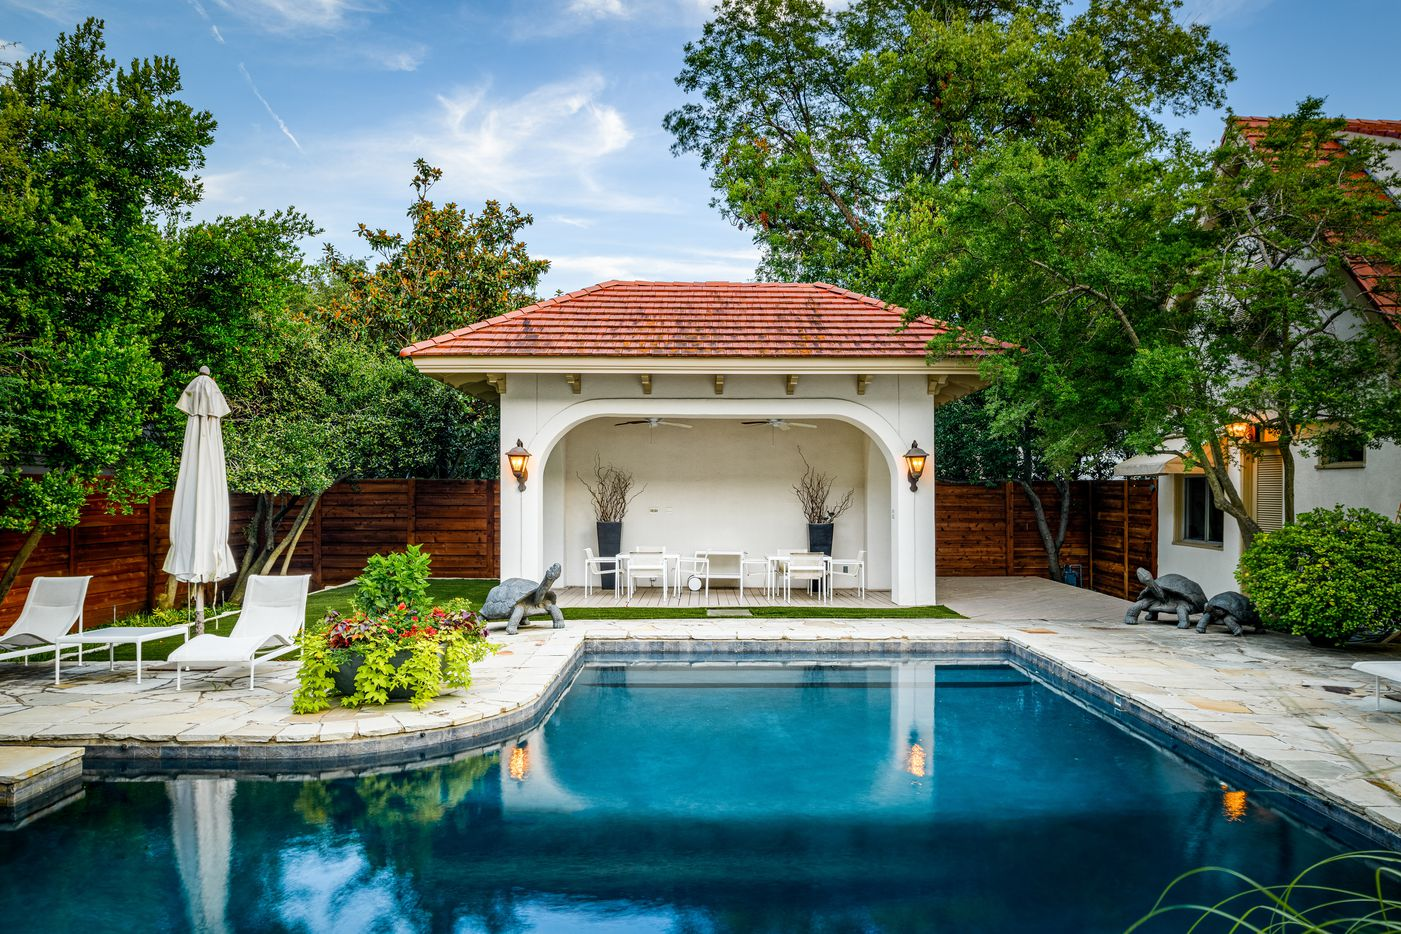 The swimming pool has a lap lane and is surrounded by lounging areas and a small casita.